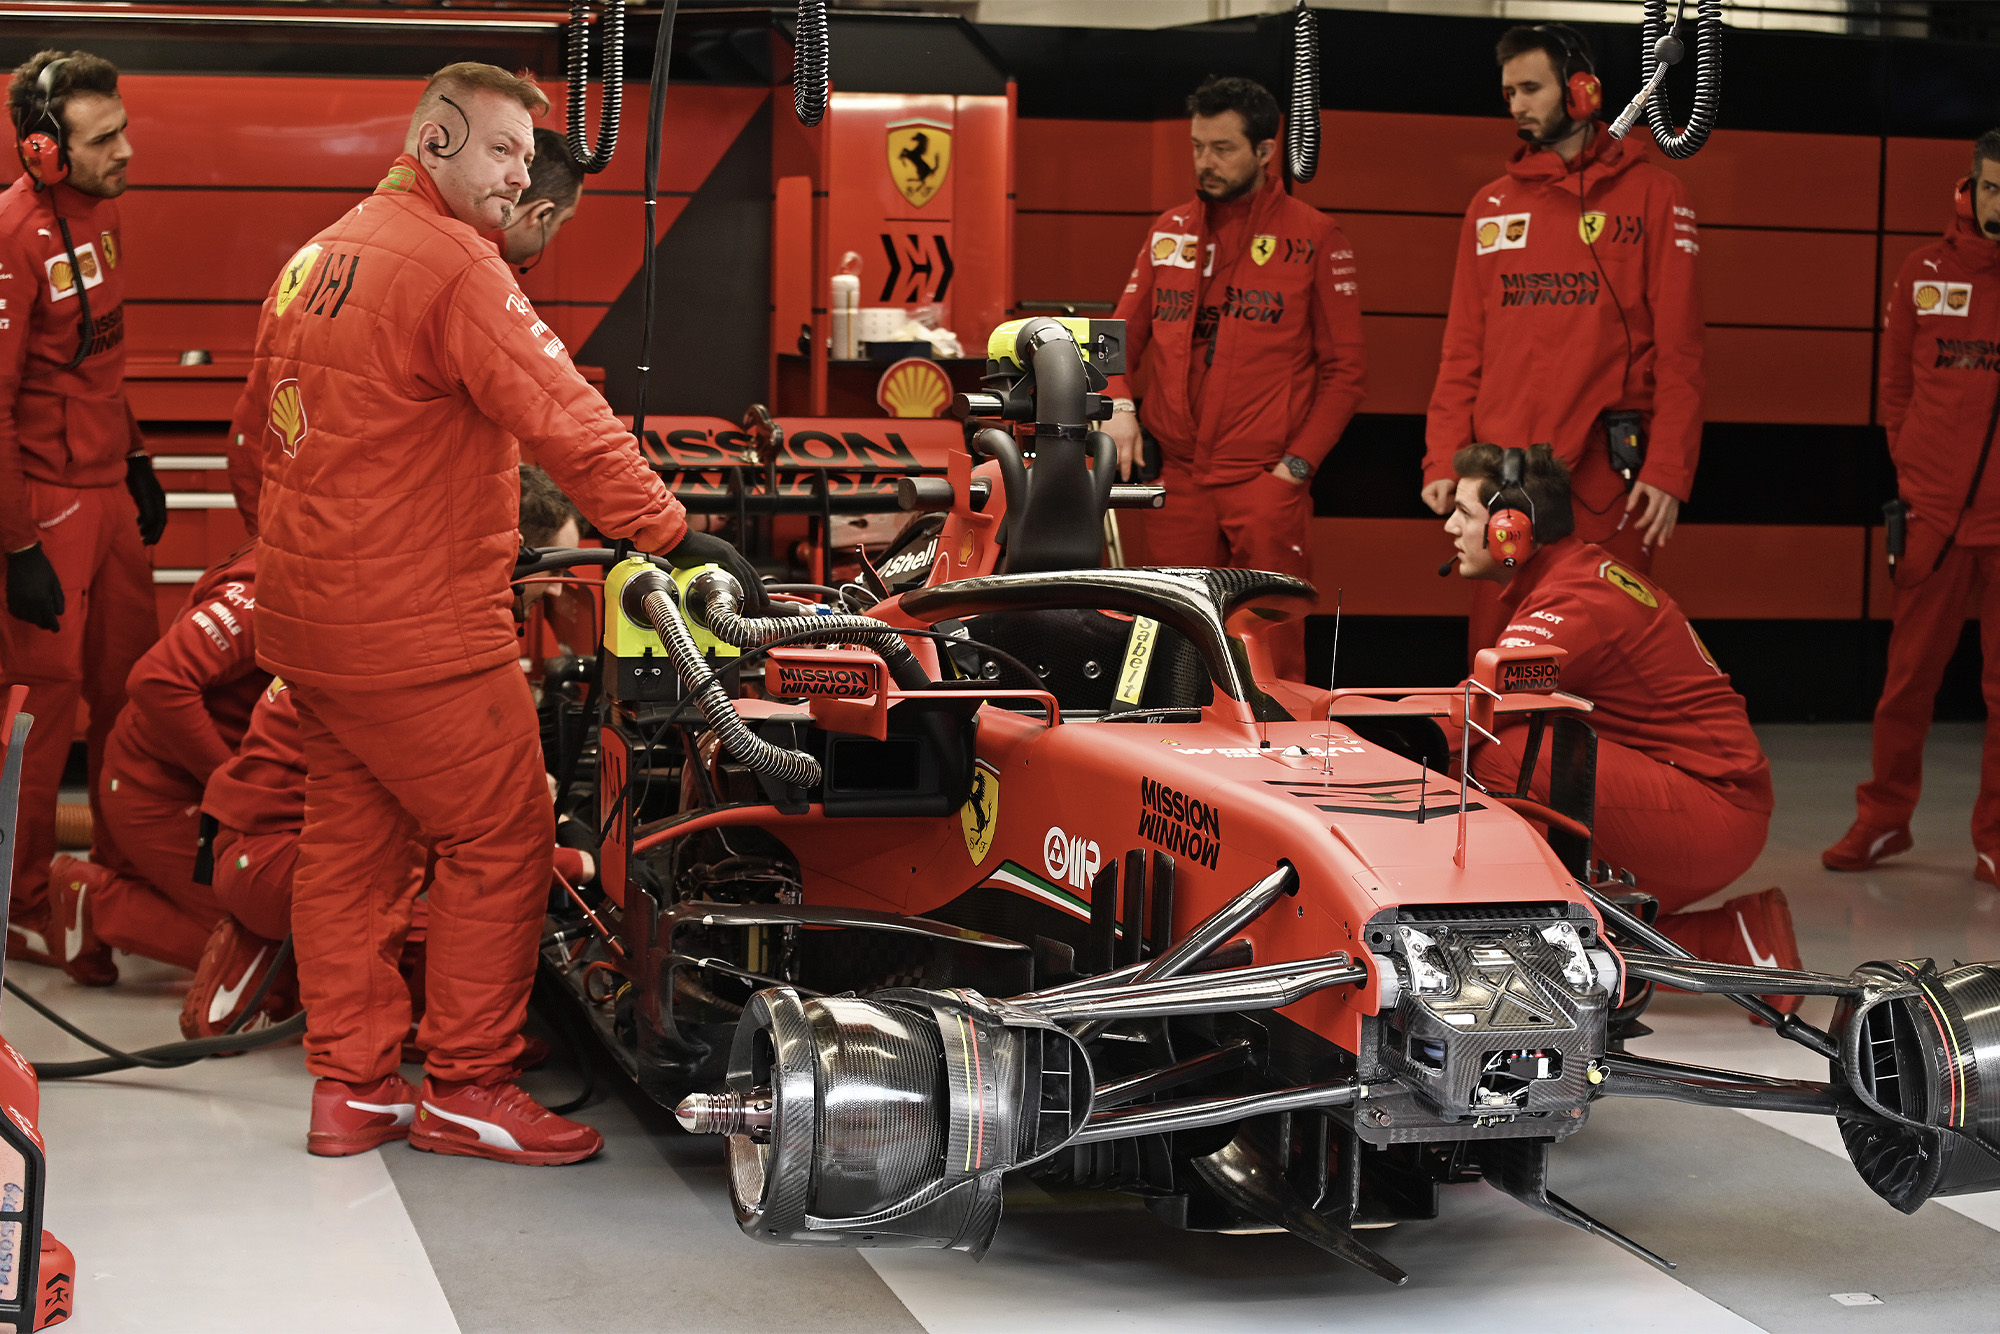 Seven F1 teams threaten legal action over secret Ferrari engine deal